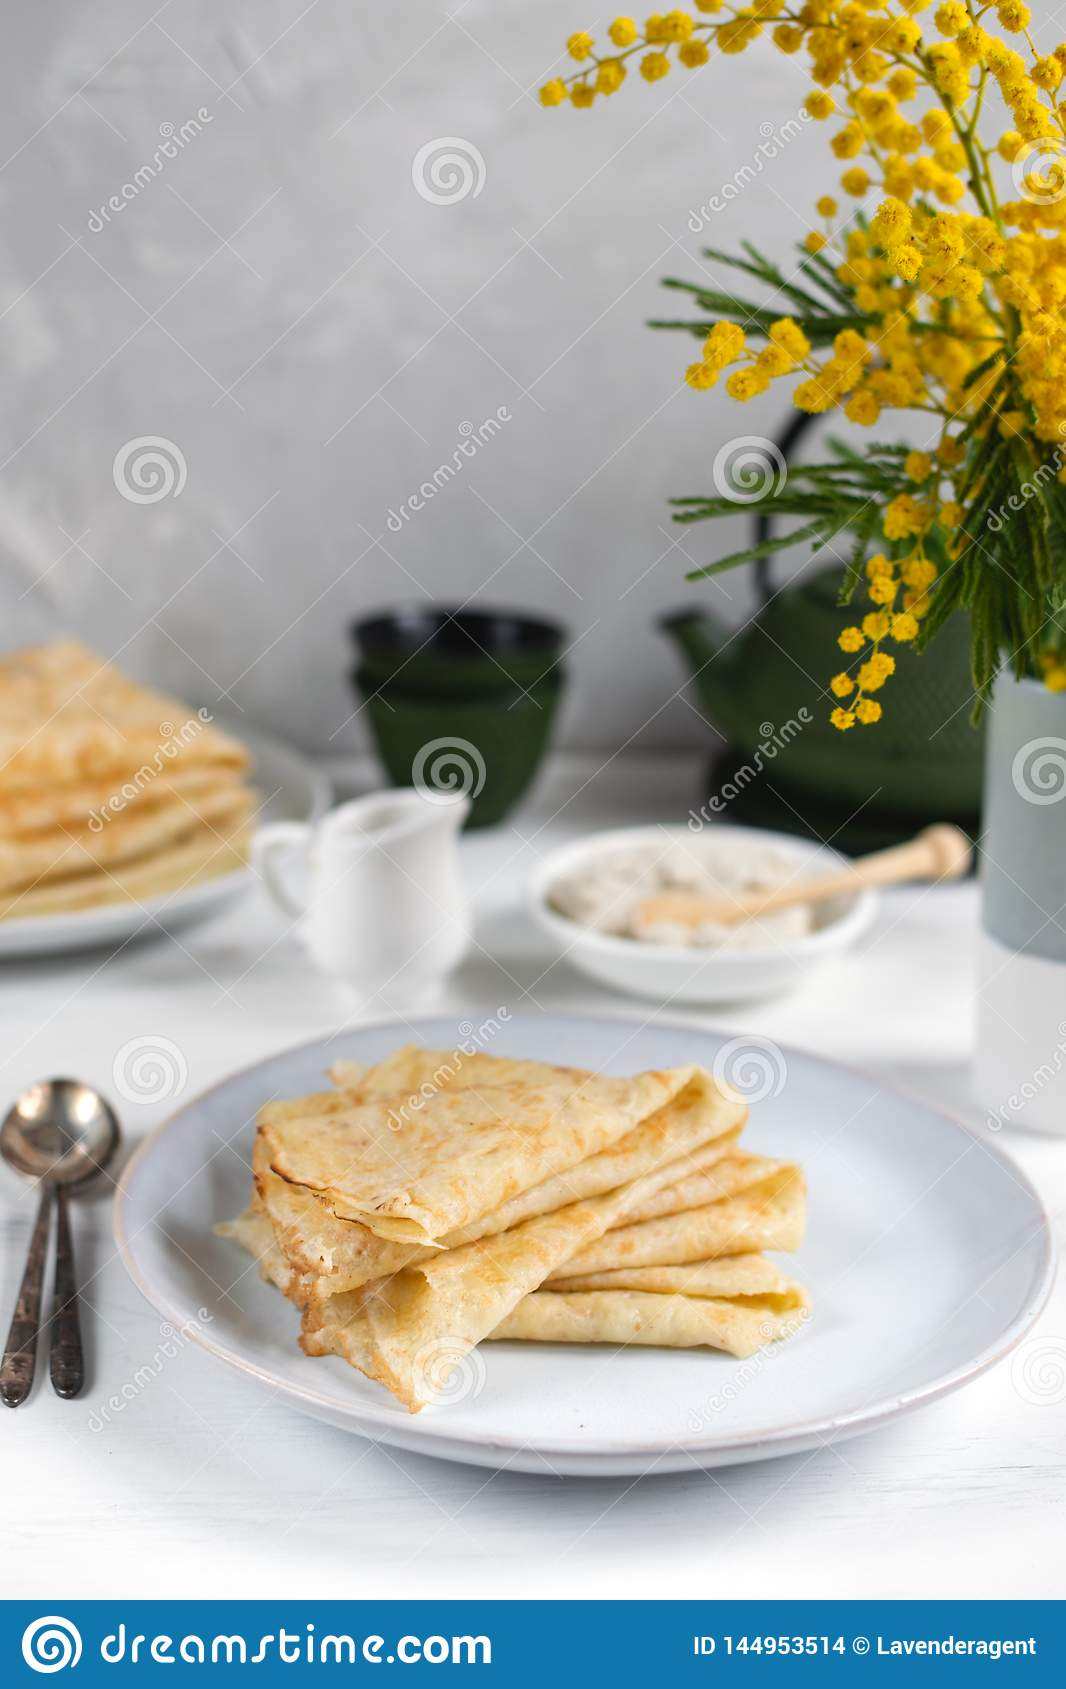 Morning, breakfast - traditional russian blini pancakes, french crepes whipped cream, cast iron green teapot, mimosa flower